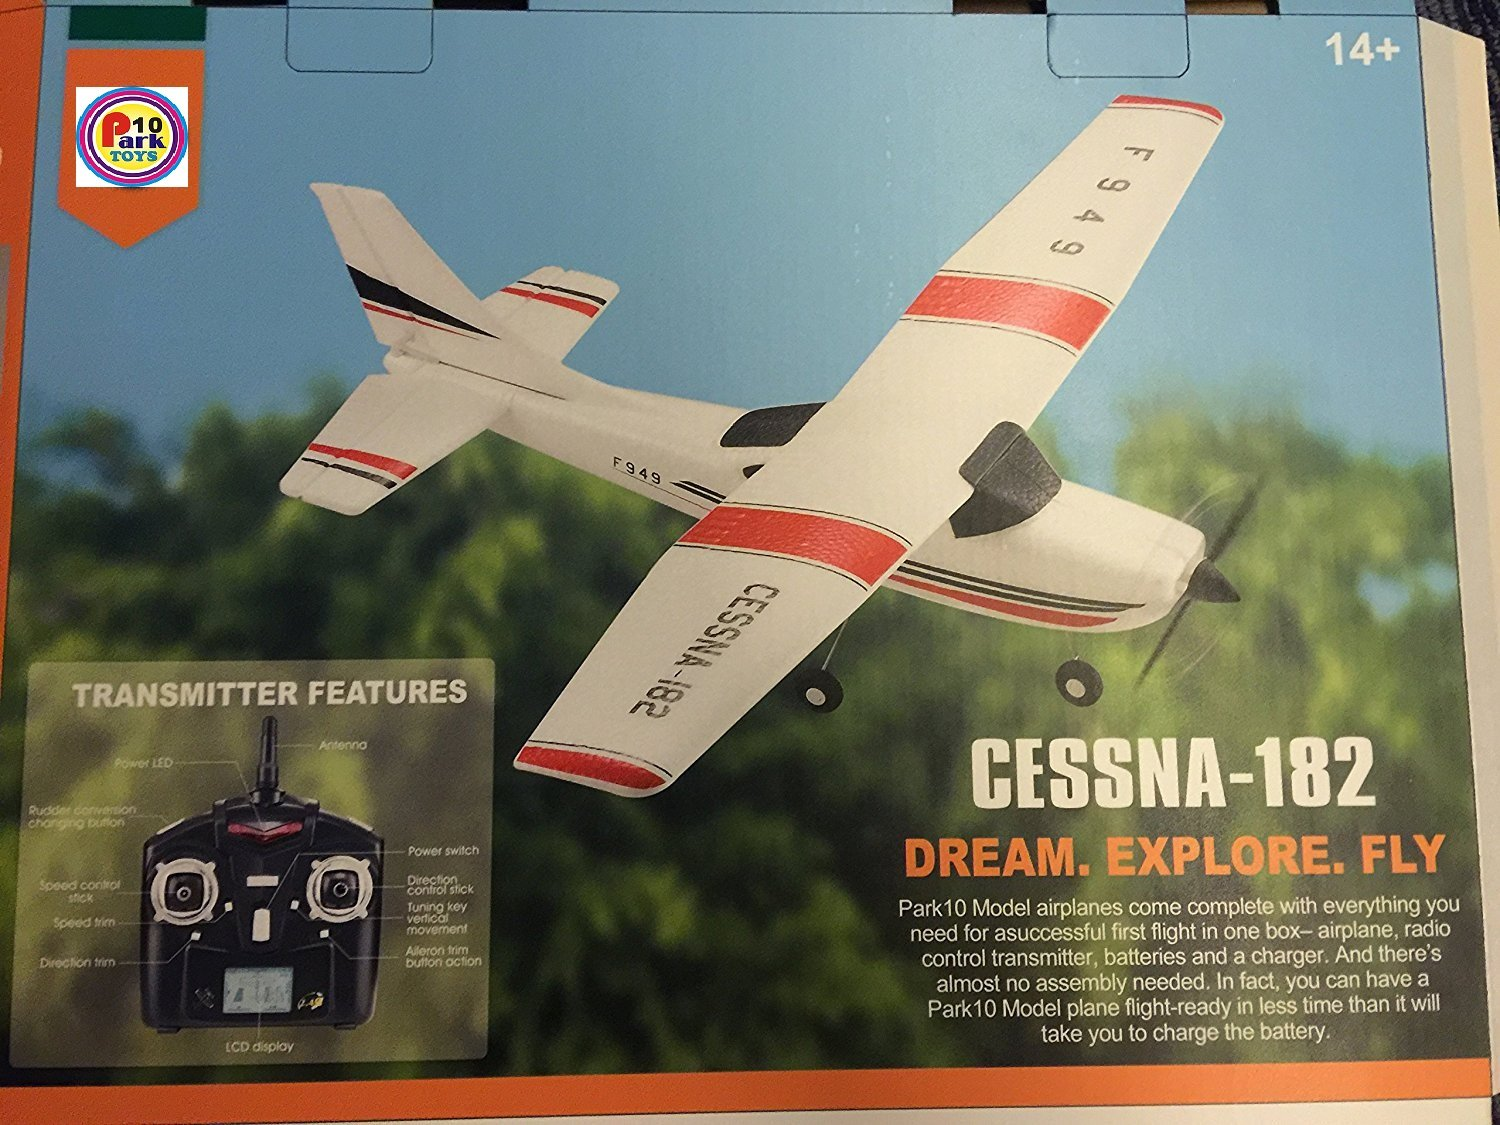 Park10 F949 3Ch RC Airplane Fixed Wing Plane Outdoor toys with 2.4G Transmitter, Extra Battery and Propeller